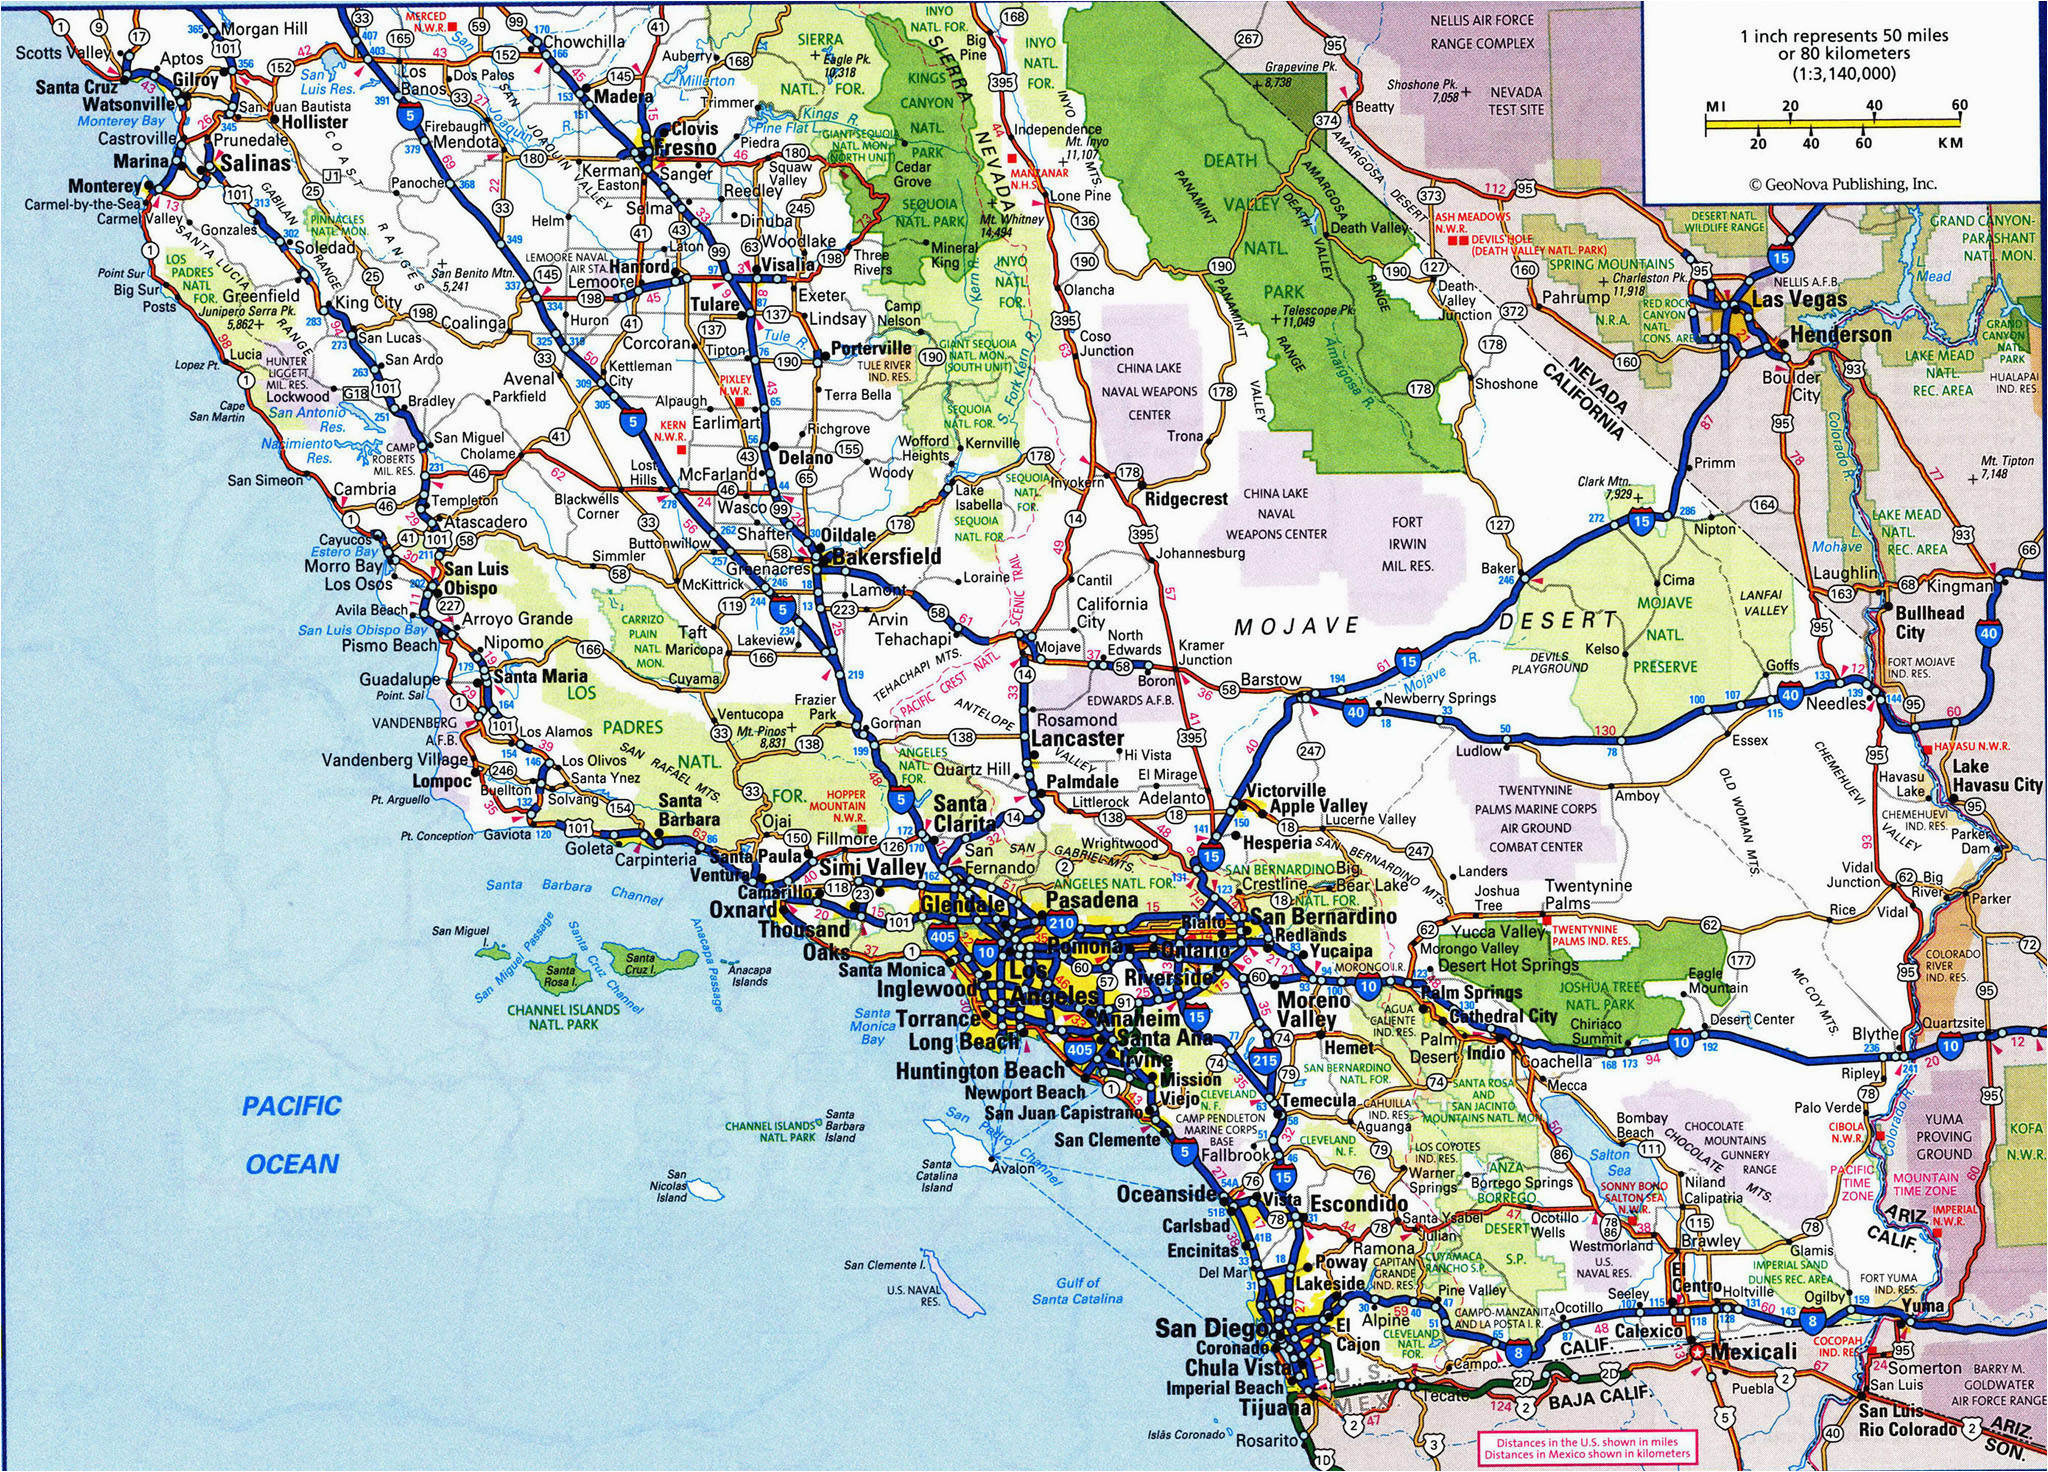 Map Of California Highway 99.Diners Drive Ins And Dives California Map Secretmuseum